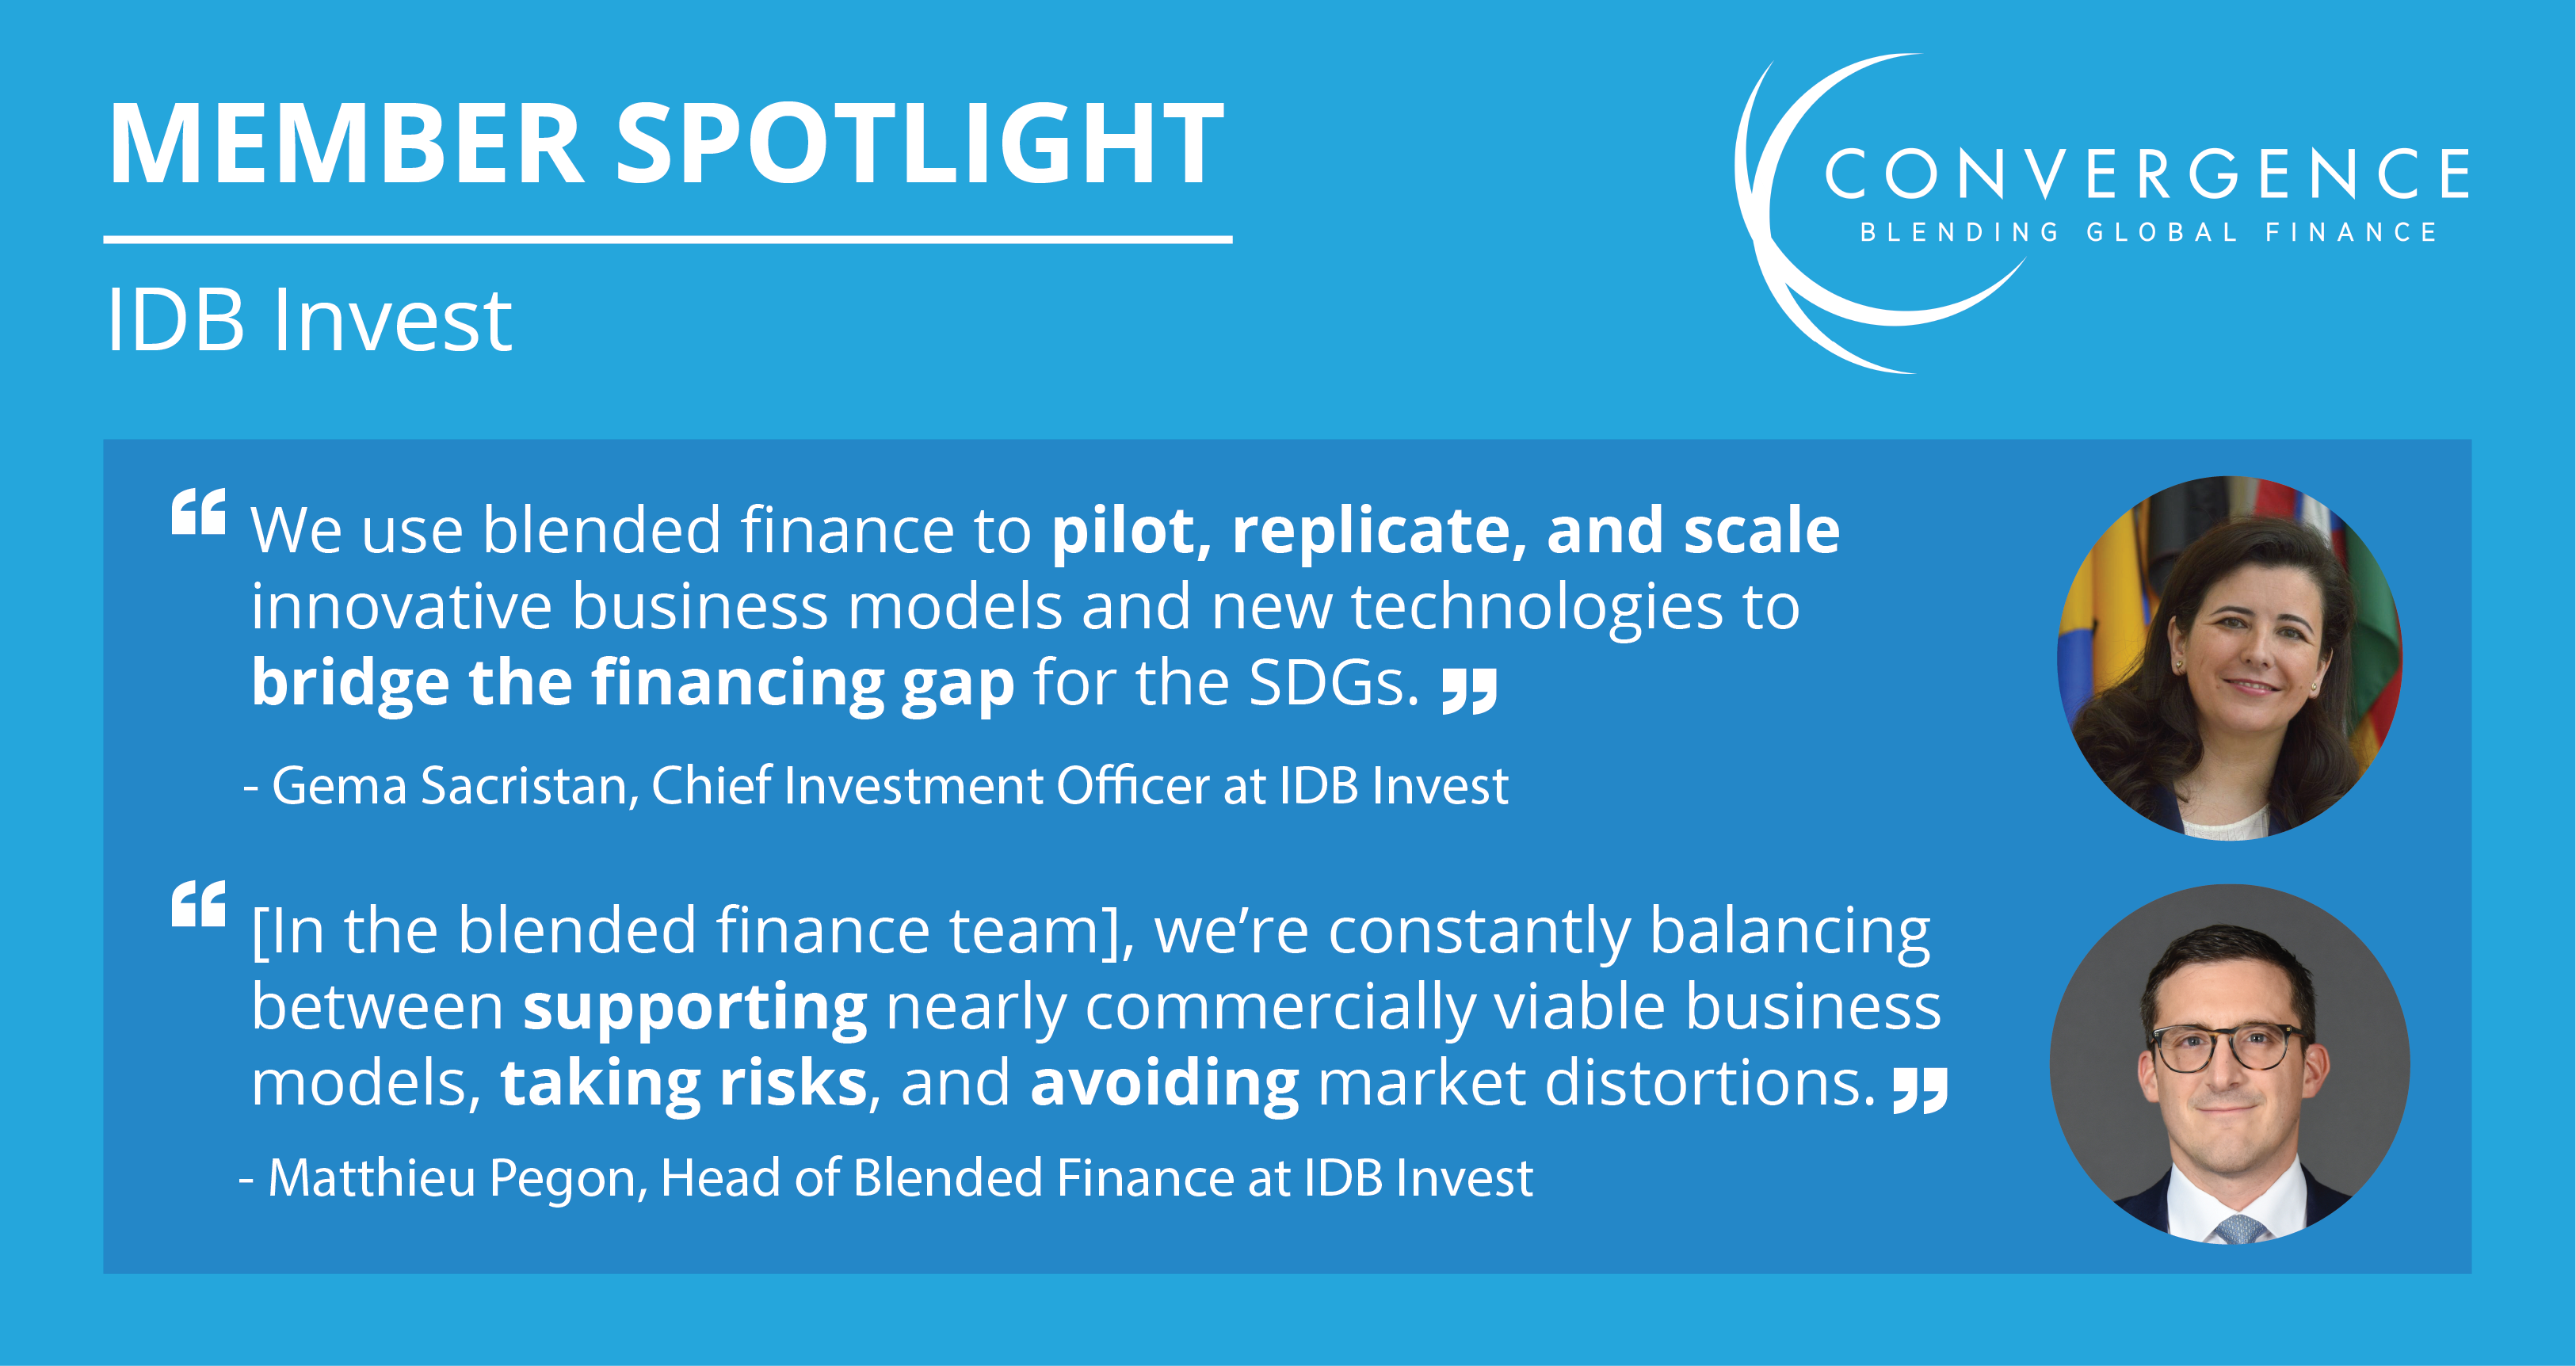 Member spotlight with Gema Sacristan & Matthieu Pegon of IDB Invest